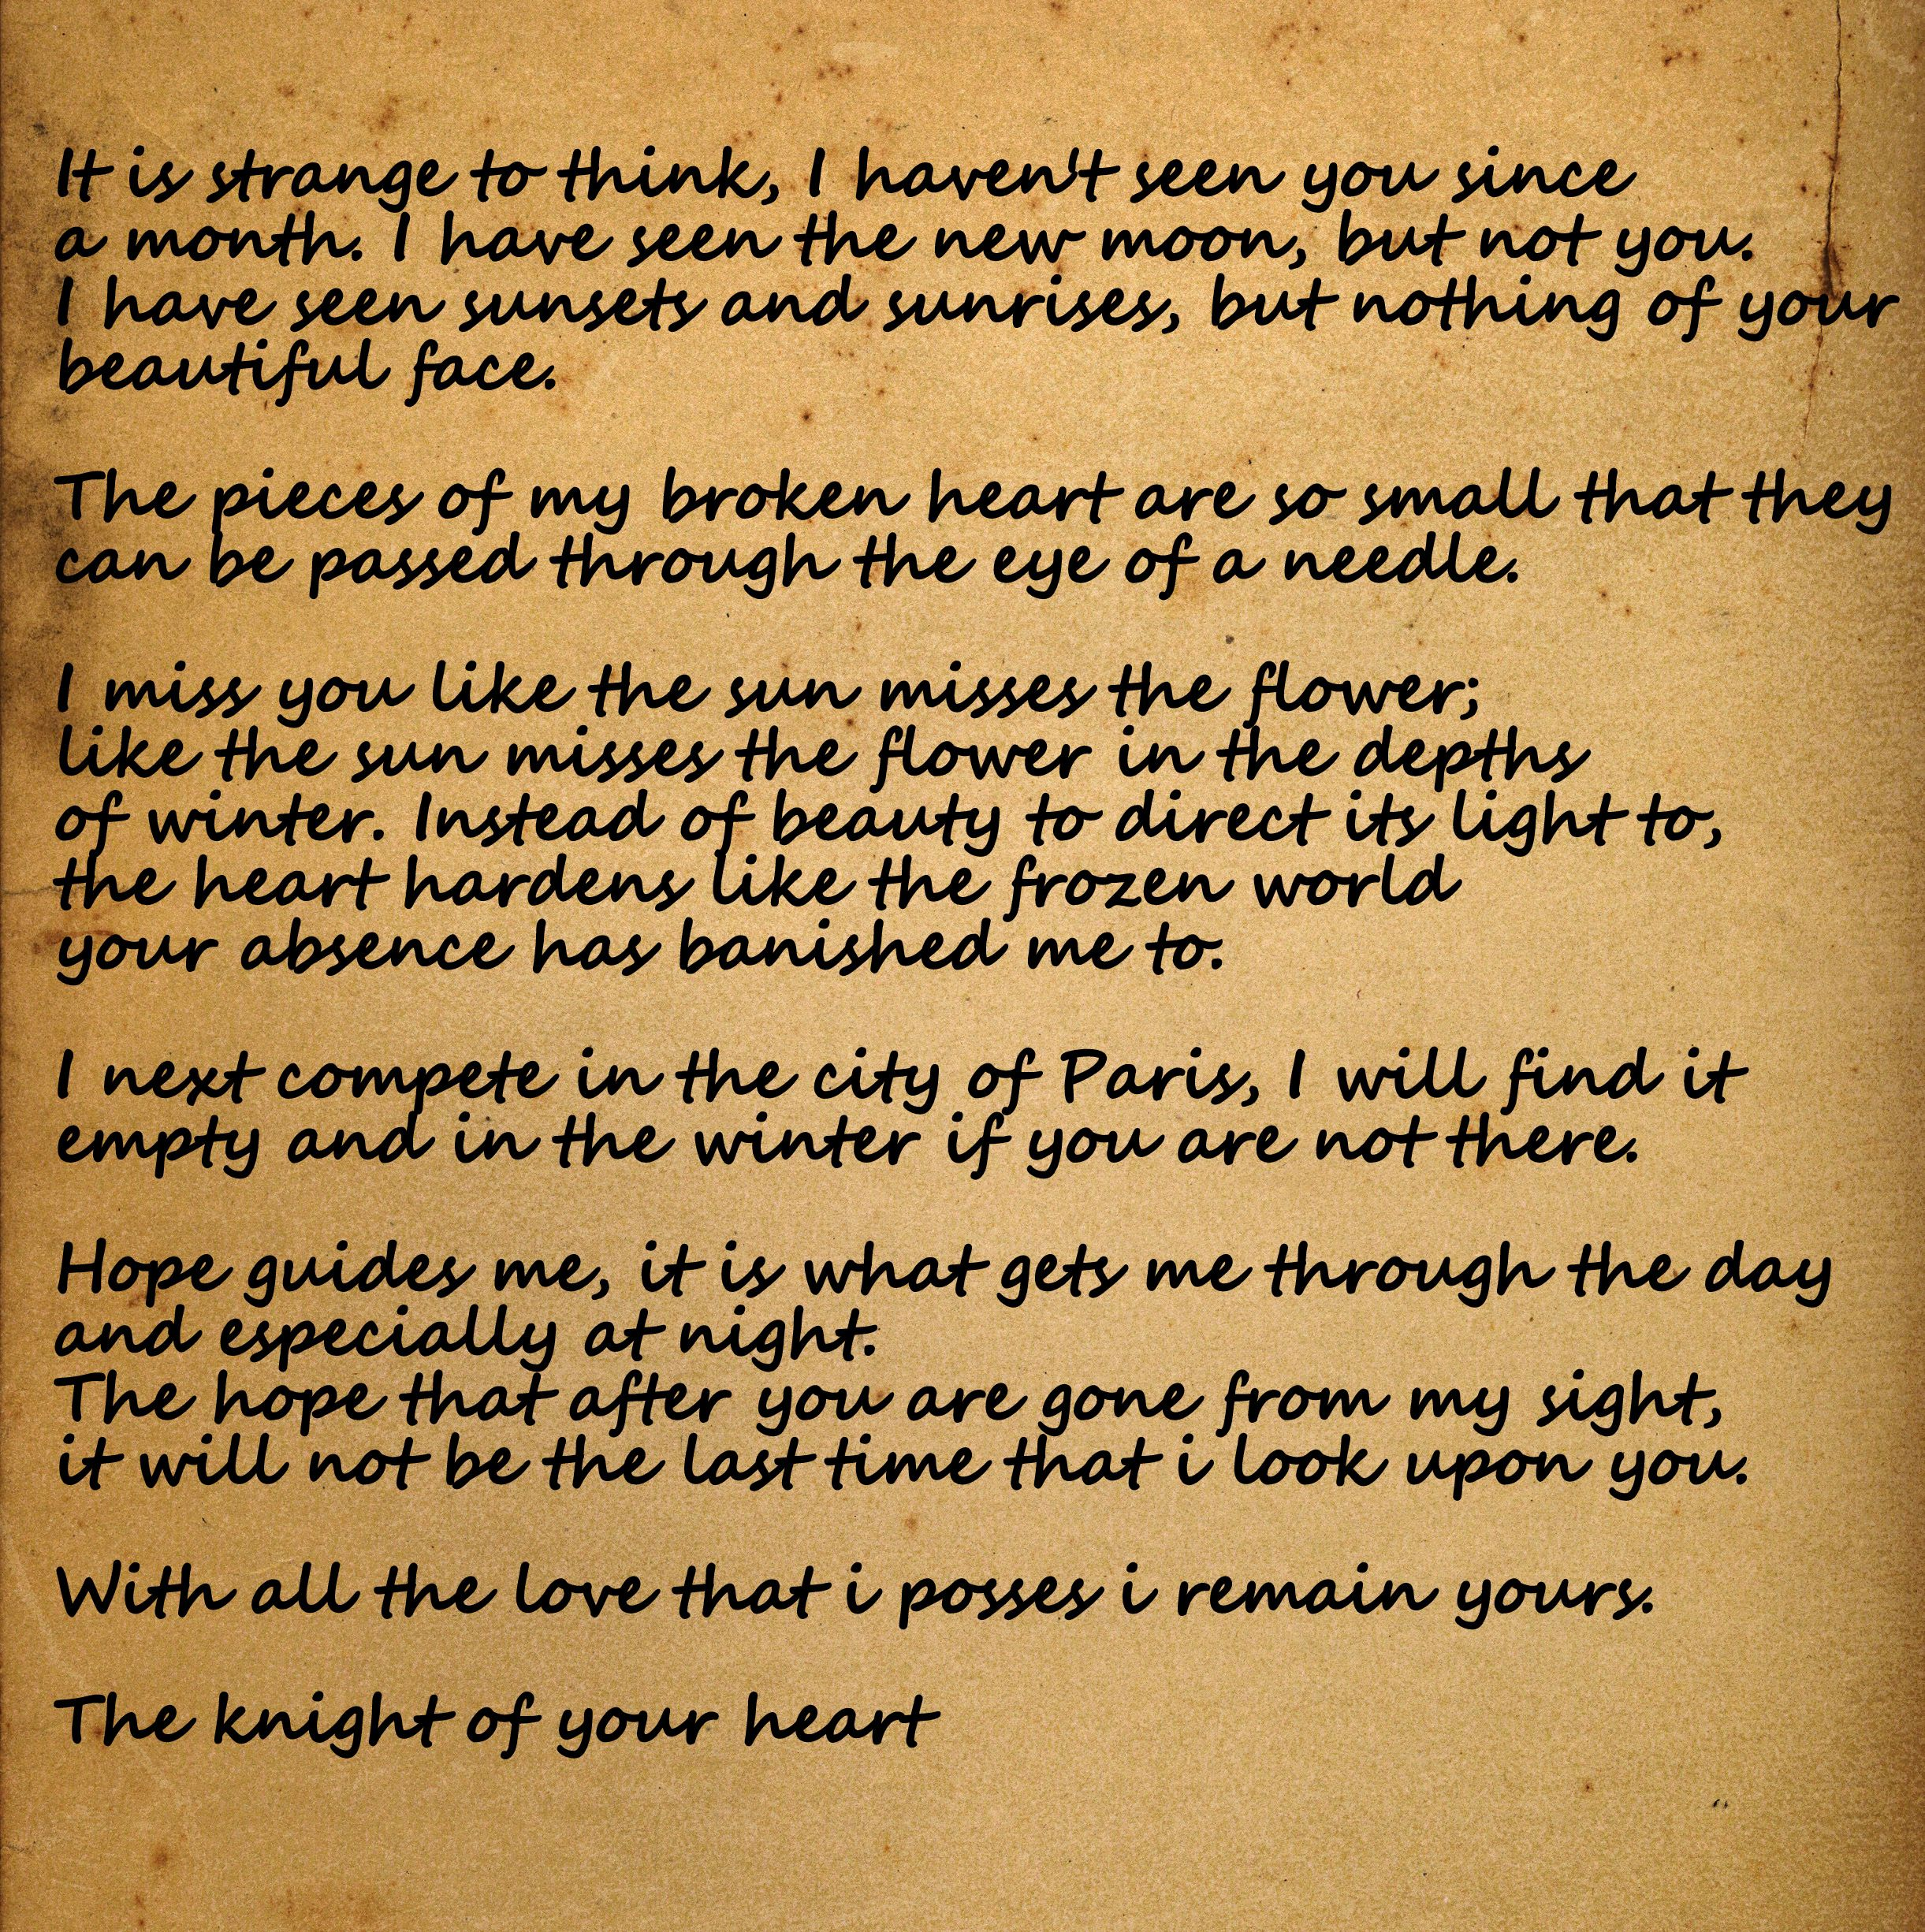 letter to Jocelyn a knights tale quotes A knights tale